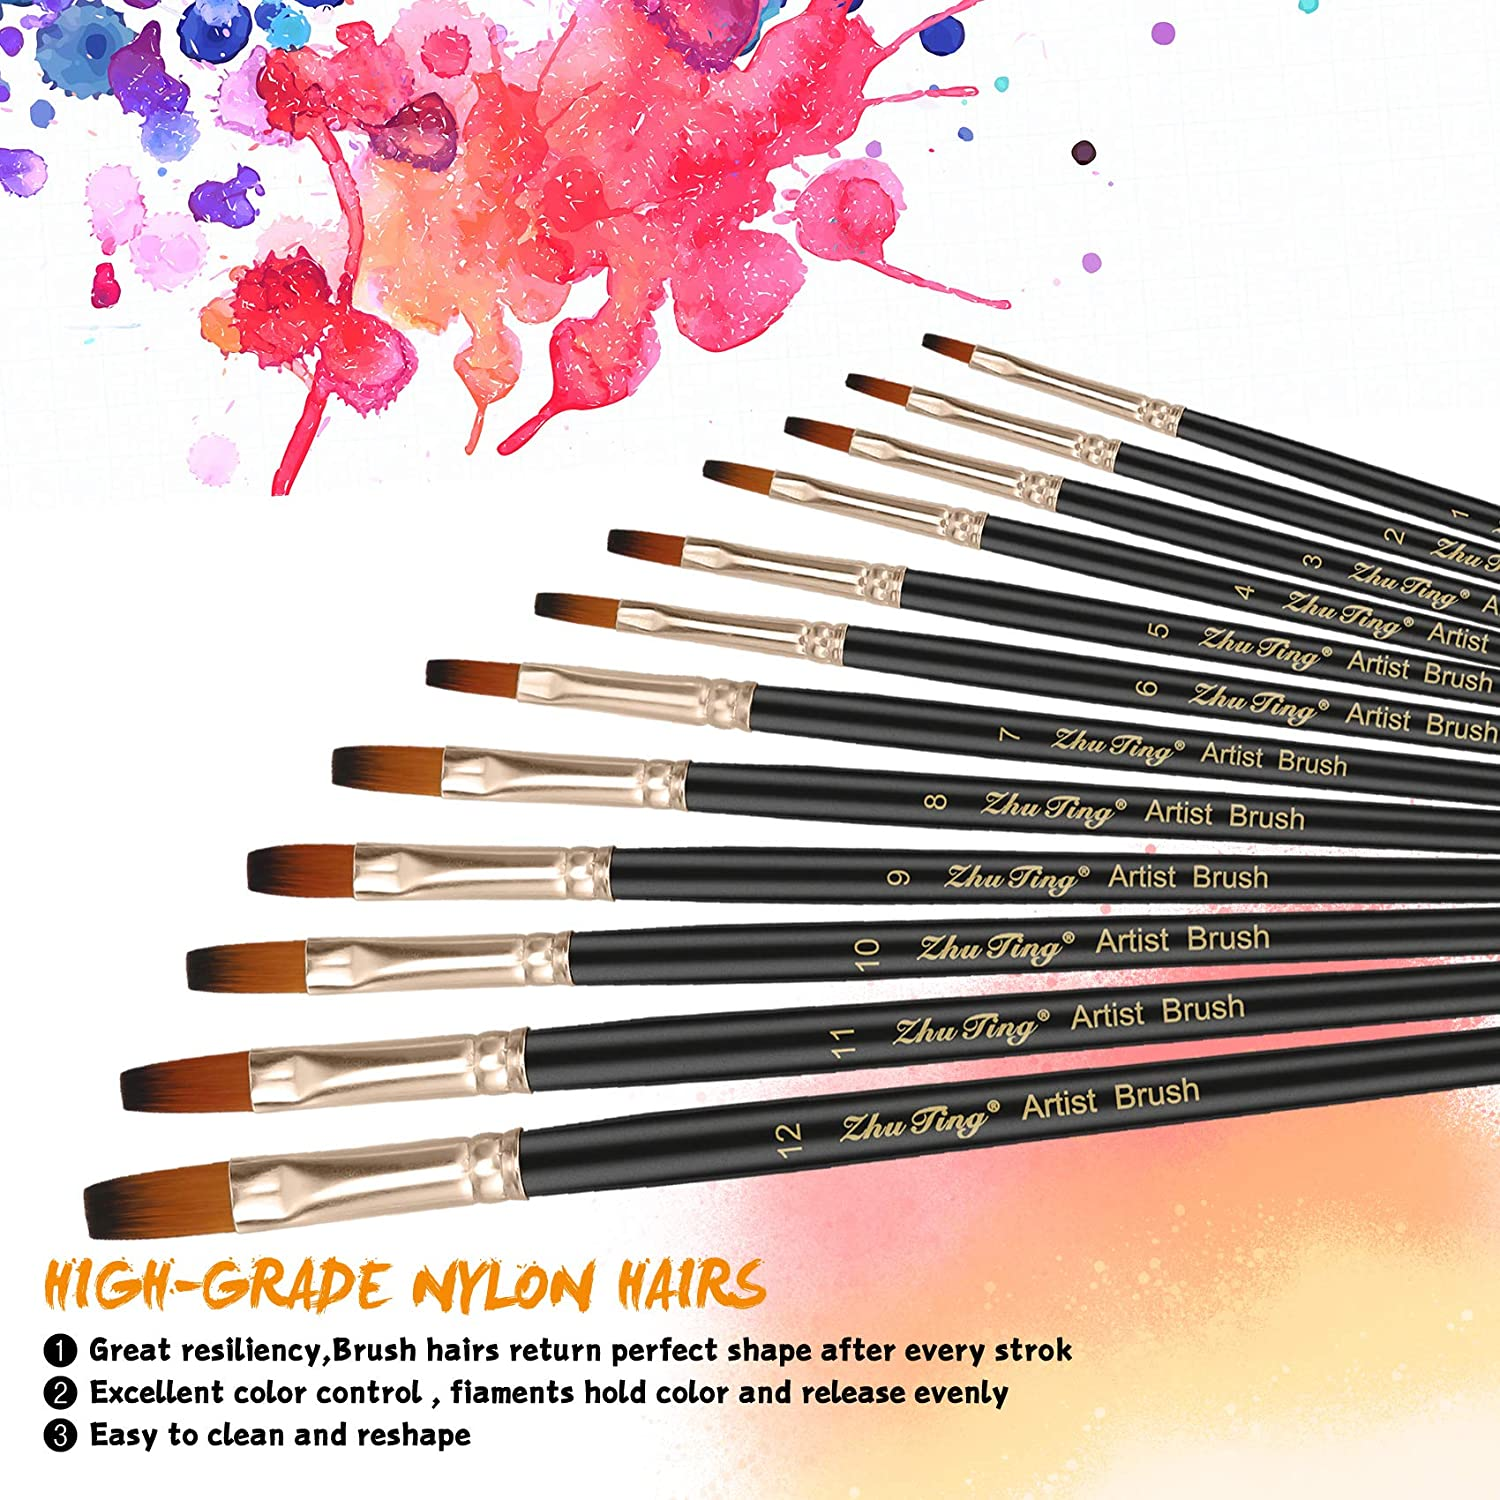 Professional Fine Tip Paint Brush Set Round Pointed Tip Nylon Hair artist acrylic brush for Acrylic Watercolor Oil Painting Black Flat Silithus Paint Brushes 12 Pieces Set black